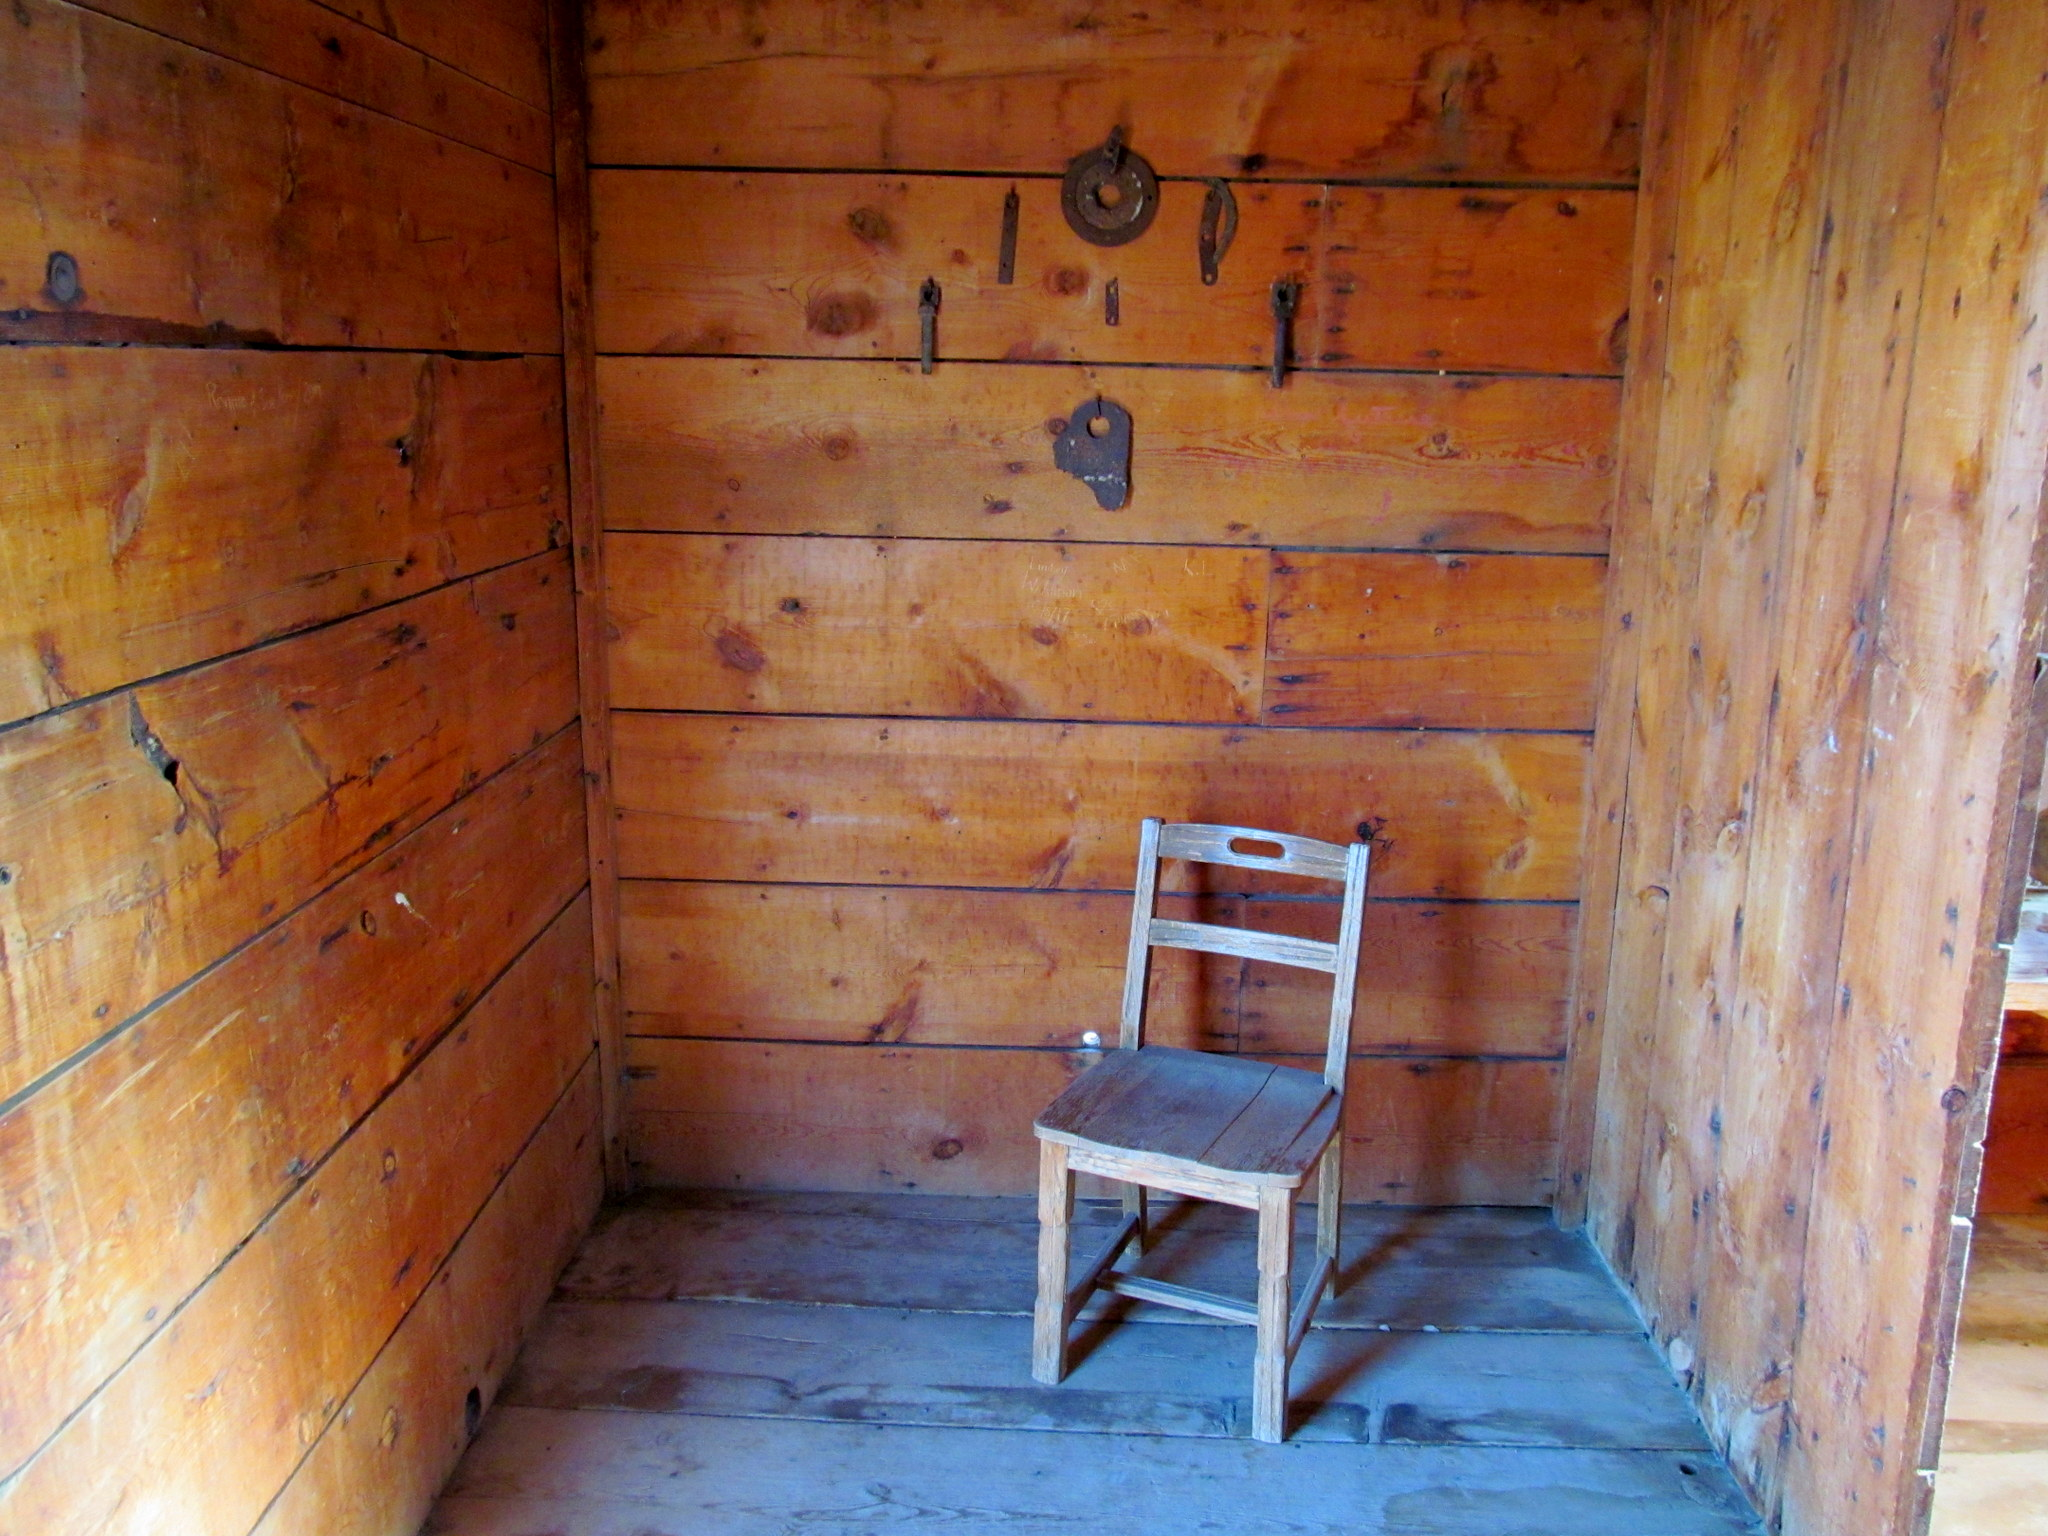 Photo: Chair inside the jail